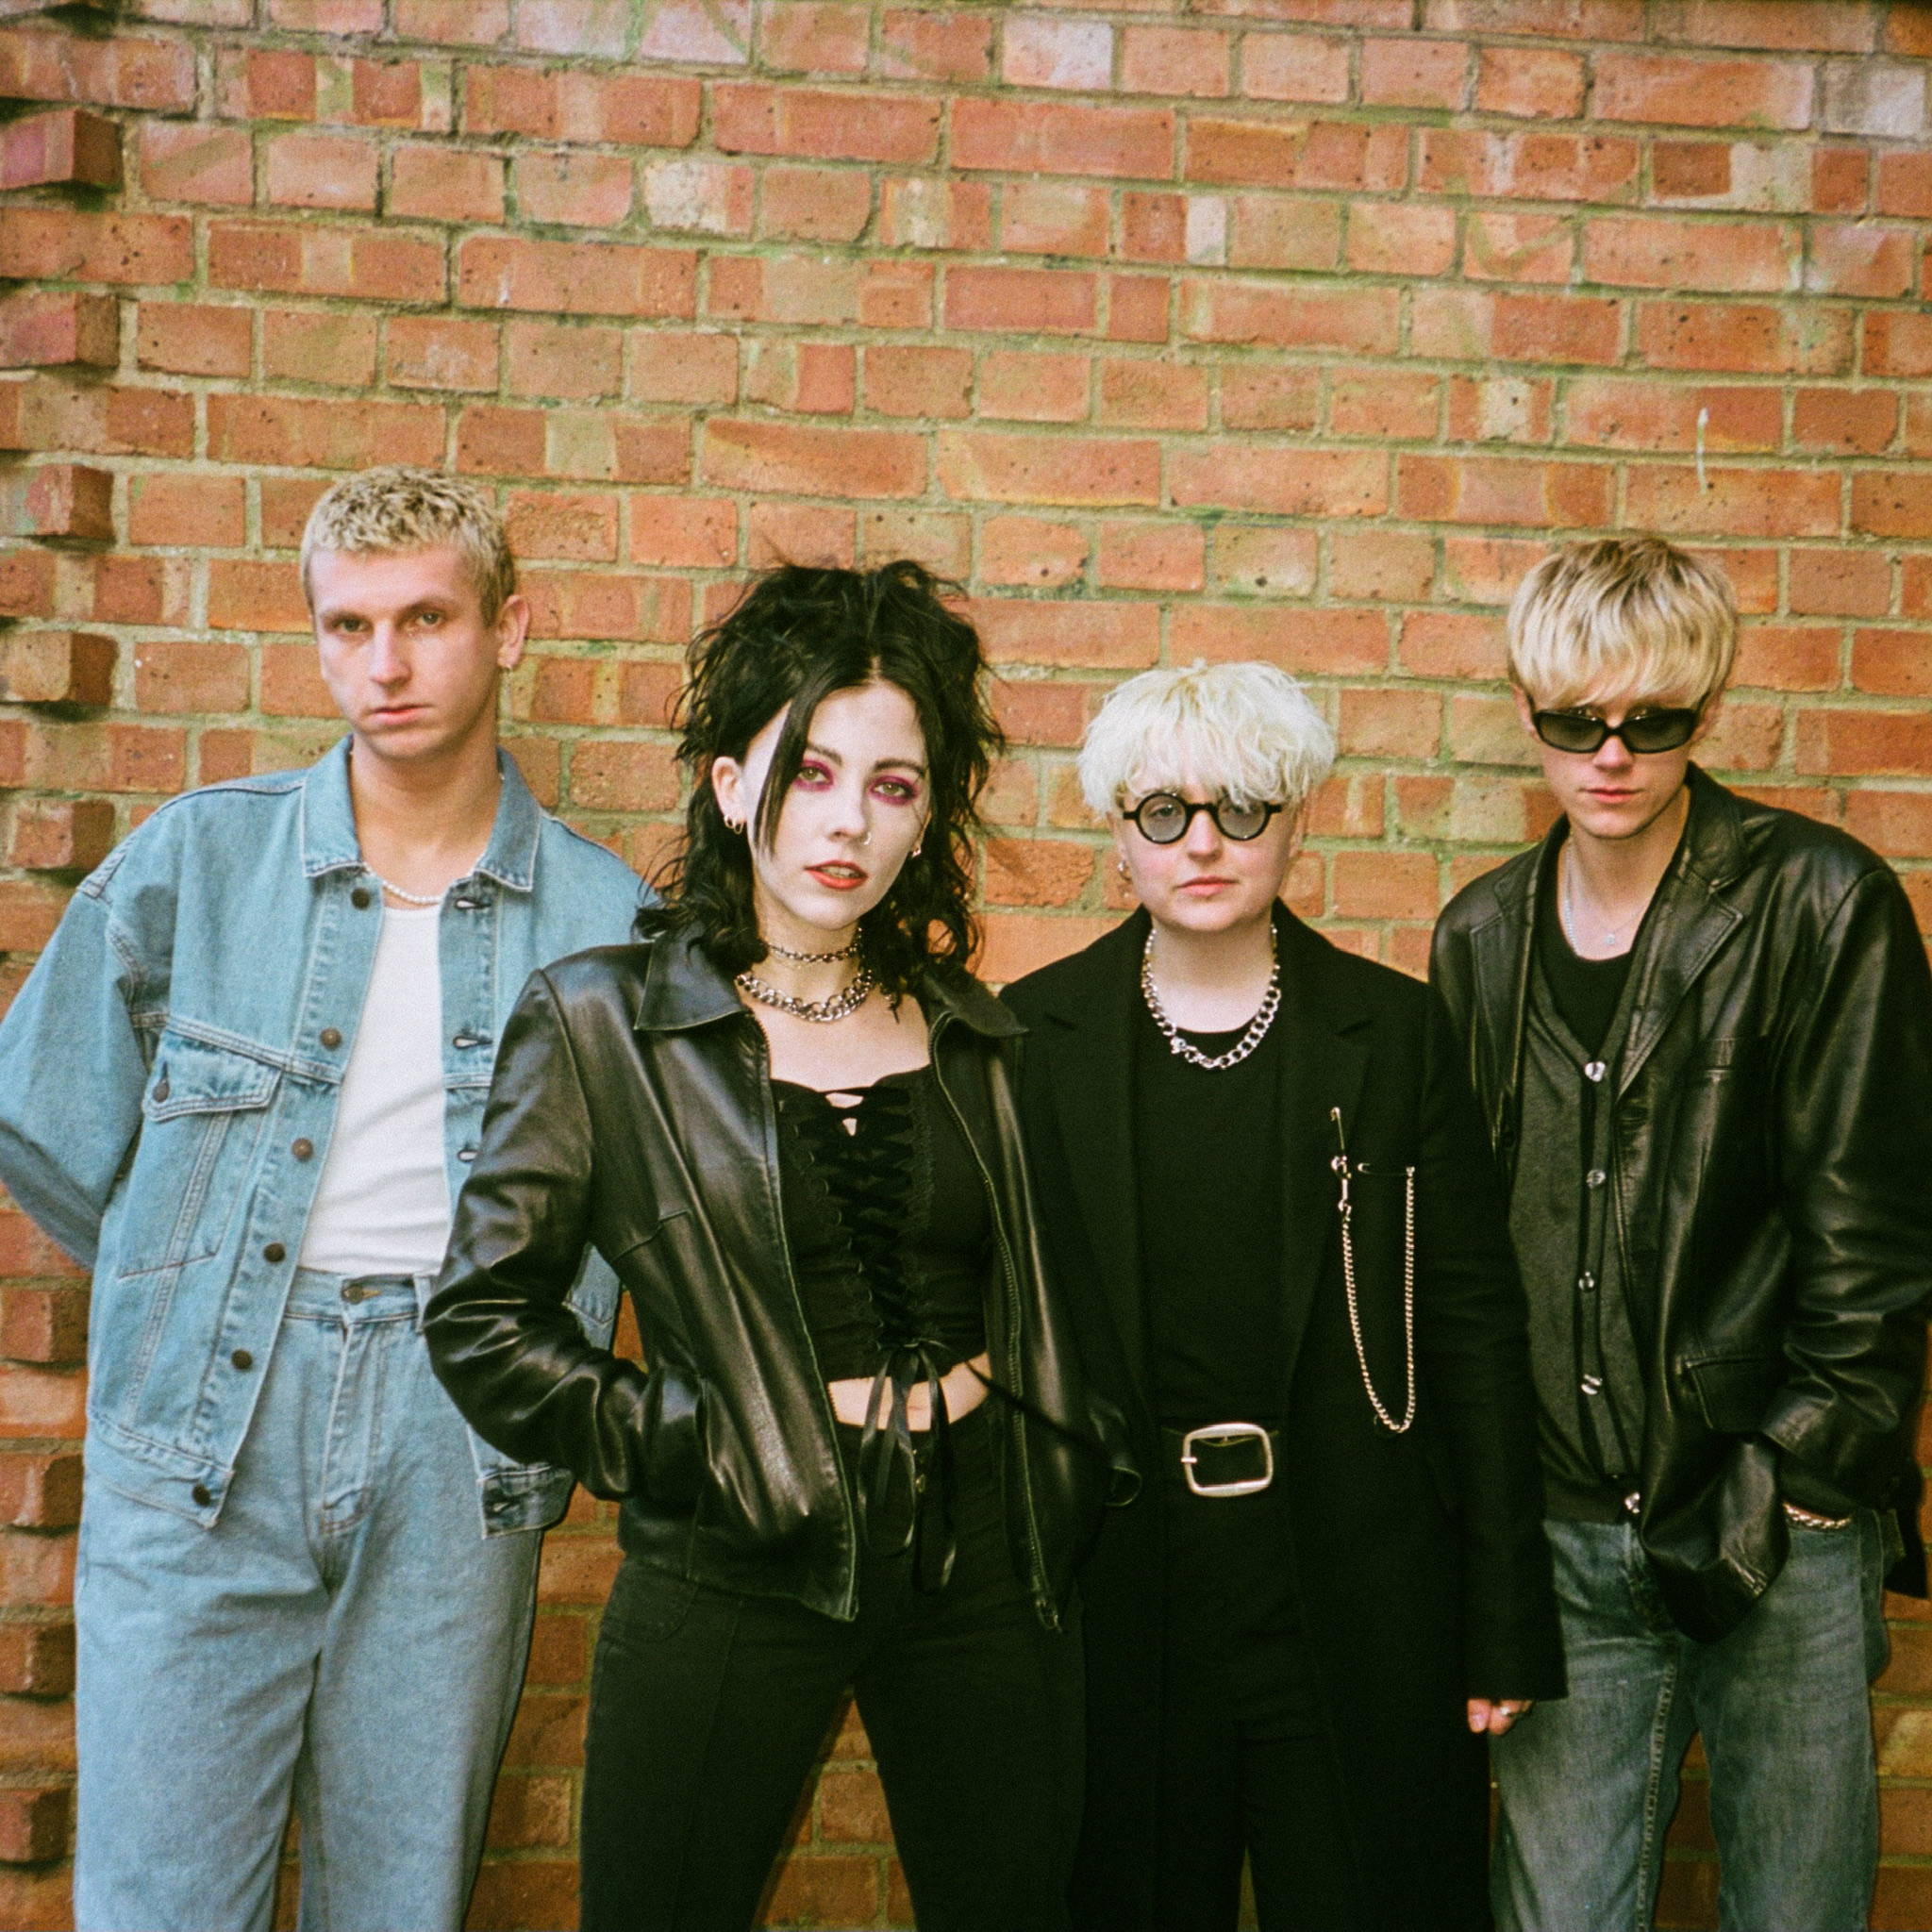 PALE WAVES NEW SINGLE 'CHANGE' OUT NOW VIA DIRTY HIT SECOND ALBUM WHO AM I? SET FOR RELEASE 12th FEBRUARY 2021